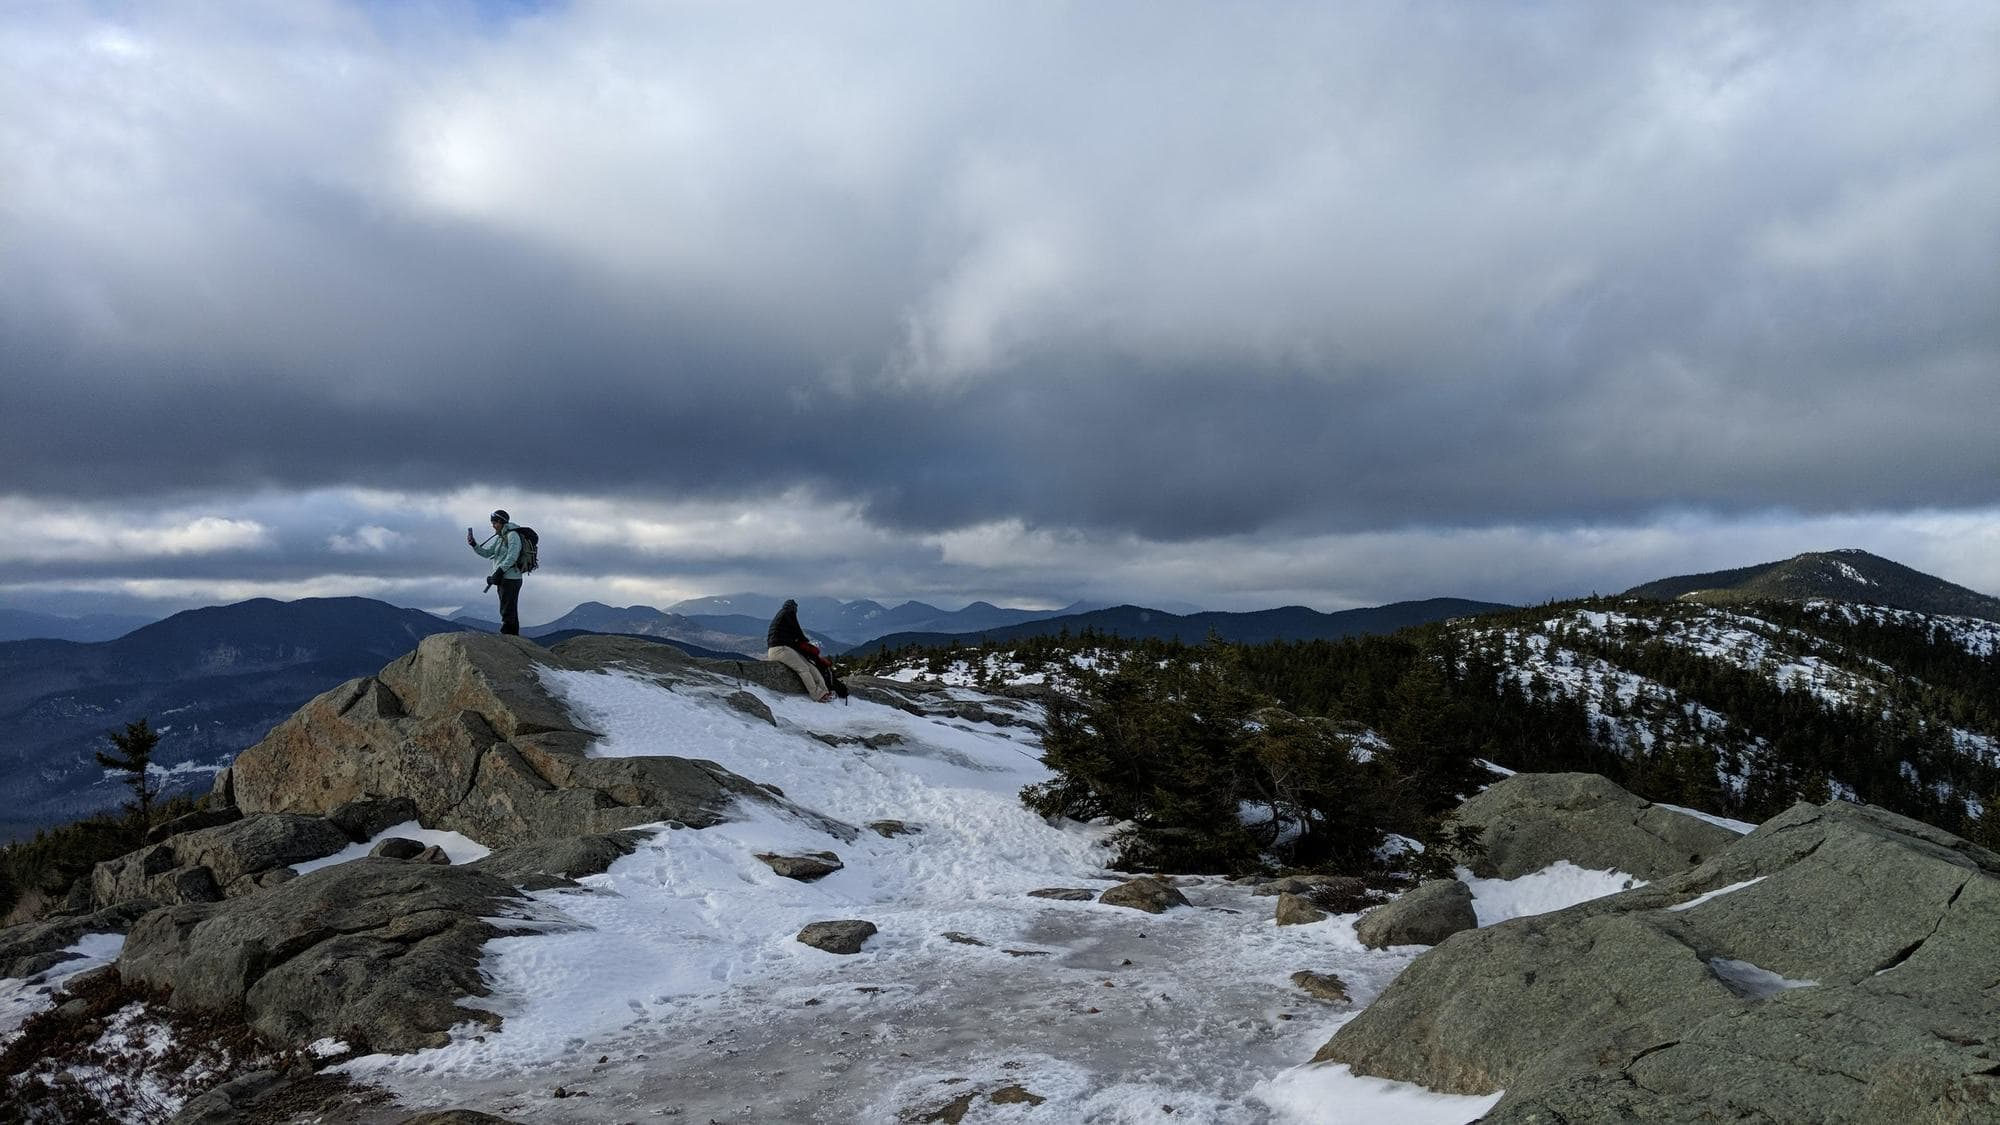 Looking for a winter hike in New Hampshire? Our trail guide to hiking South Mount Mountain in the winter includes what to bring, trail tips and more.